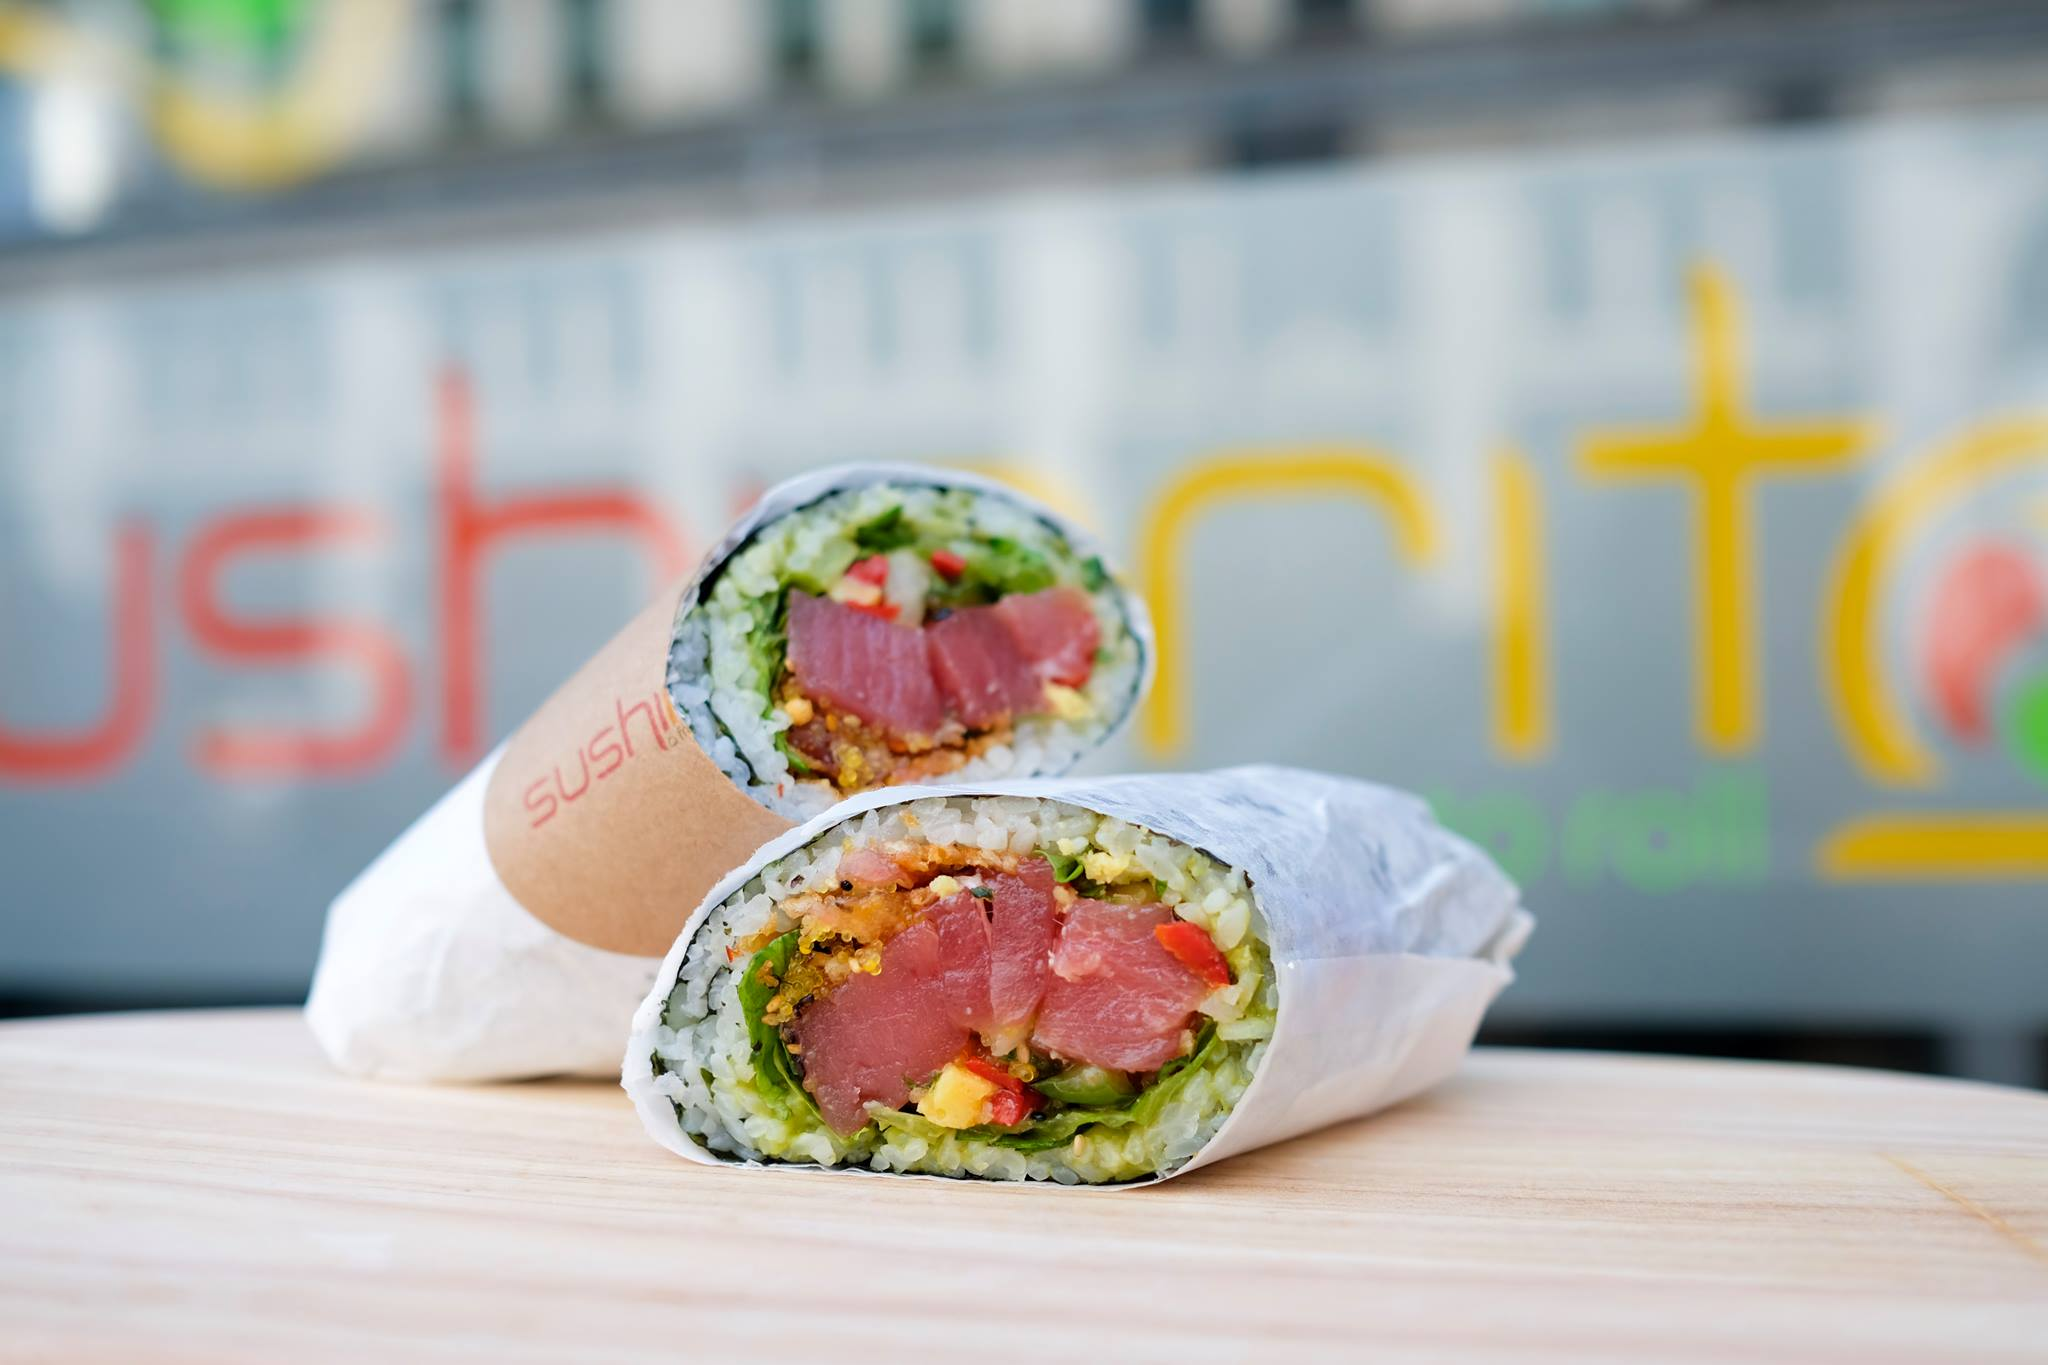 Sushi Burrito from Sushirrito (New York)